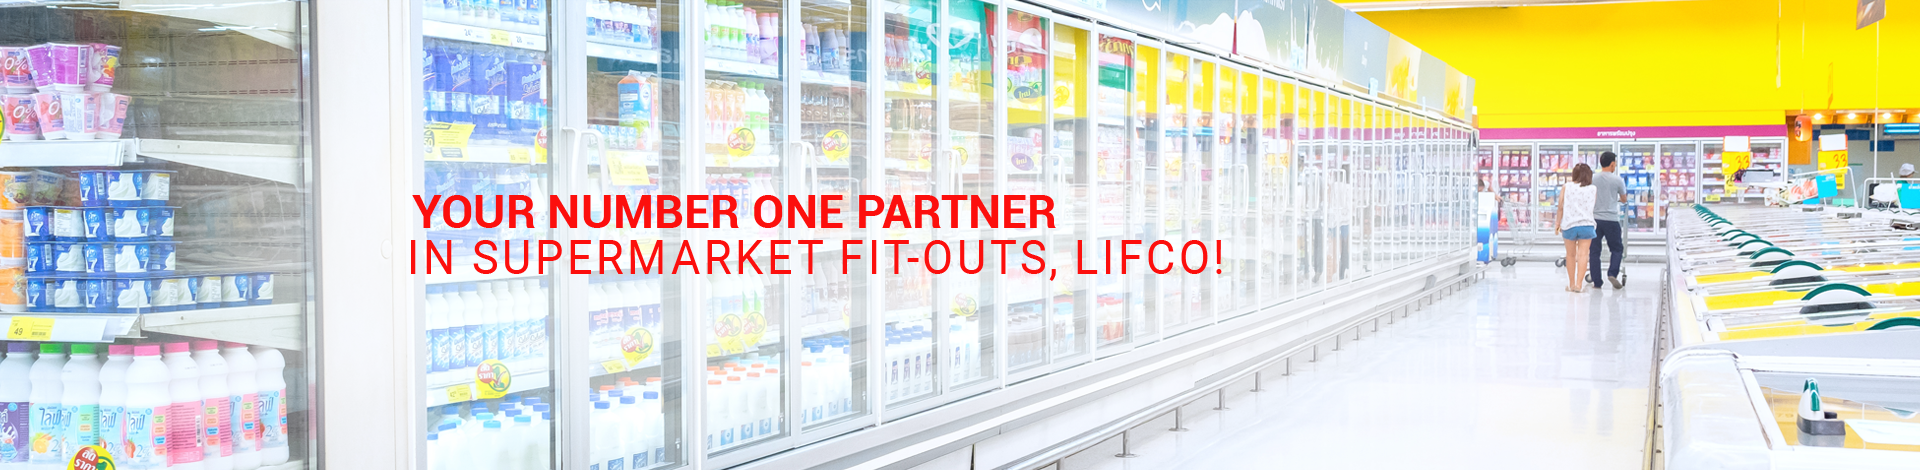 supermarket-fit-outs